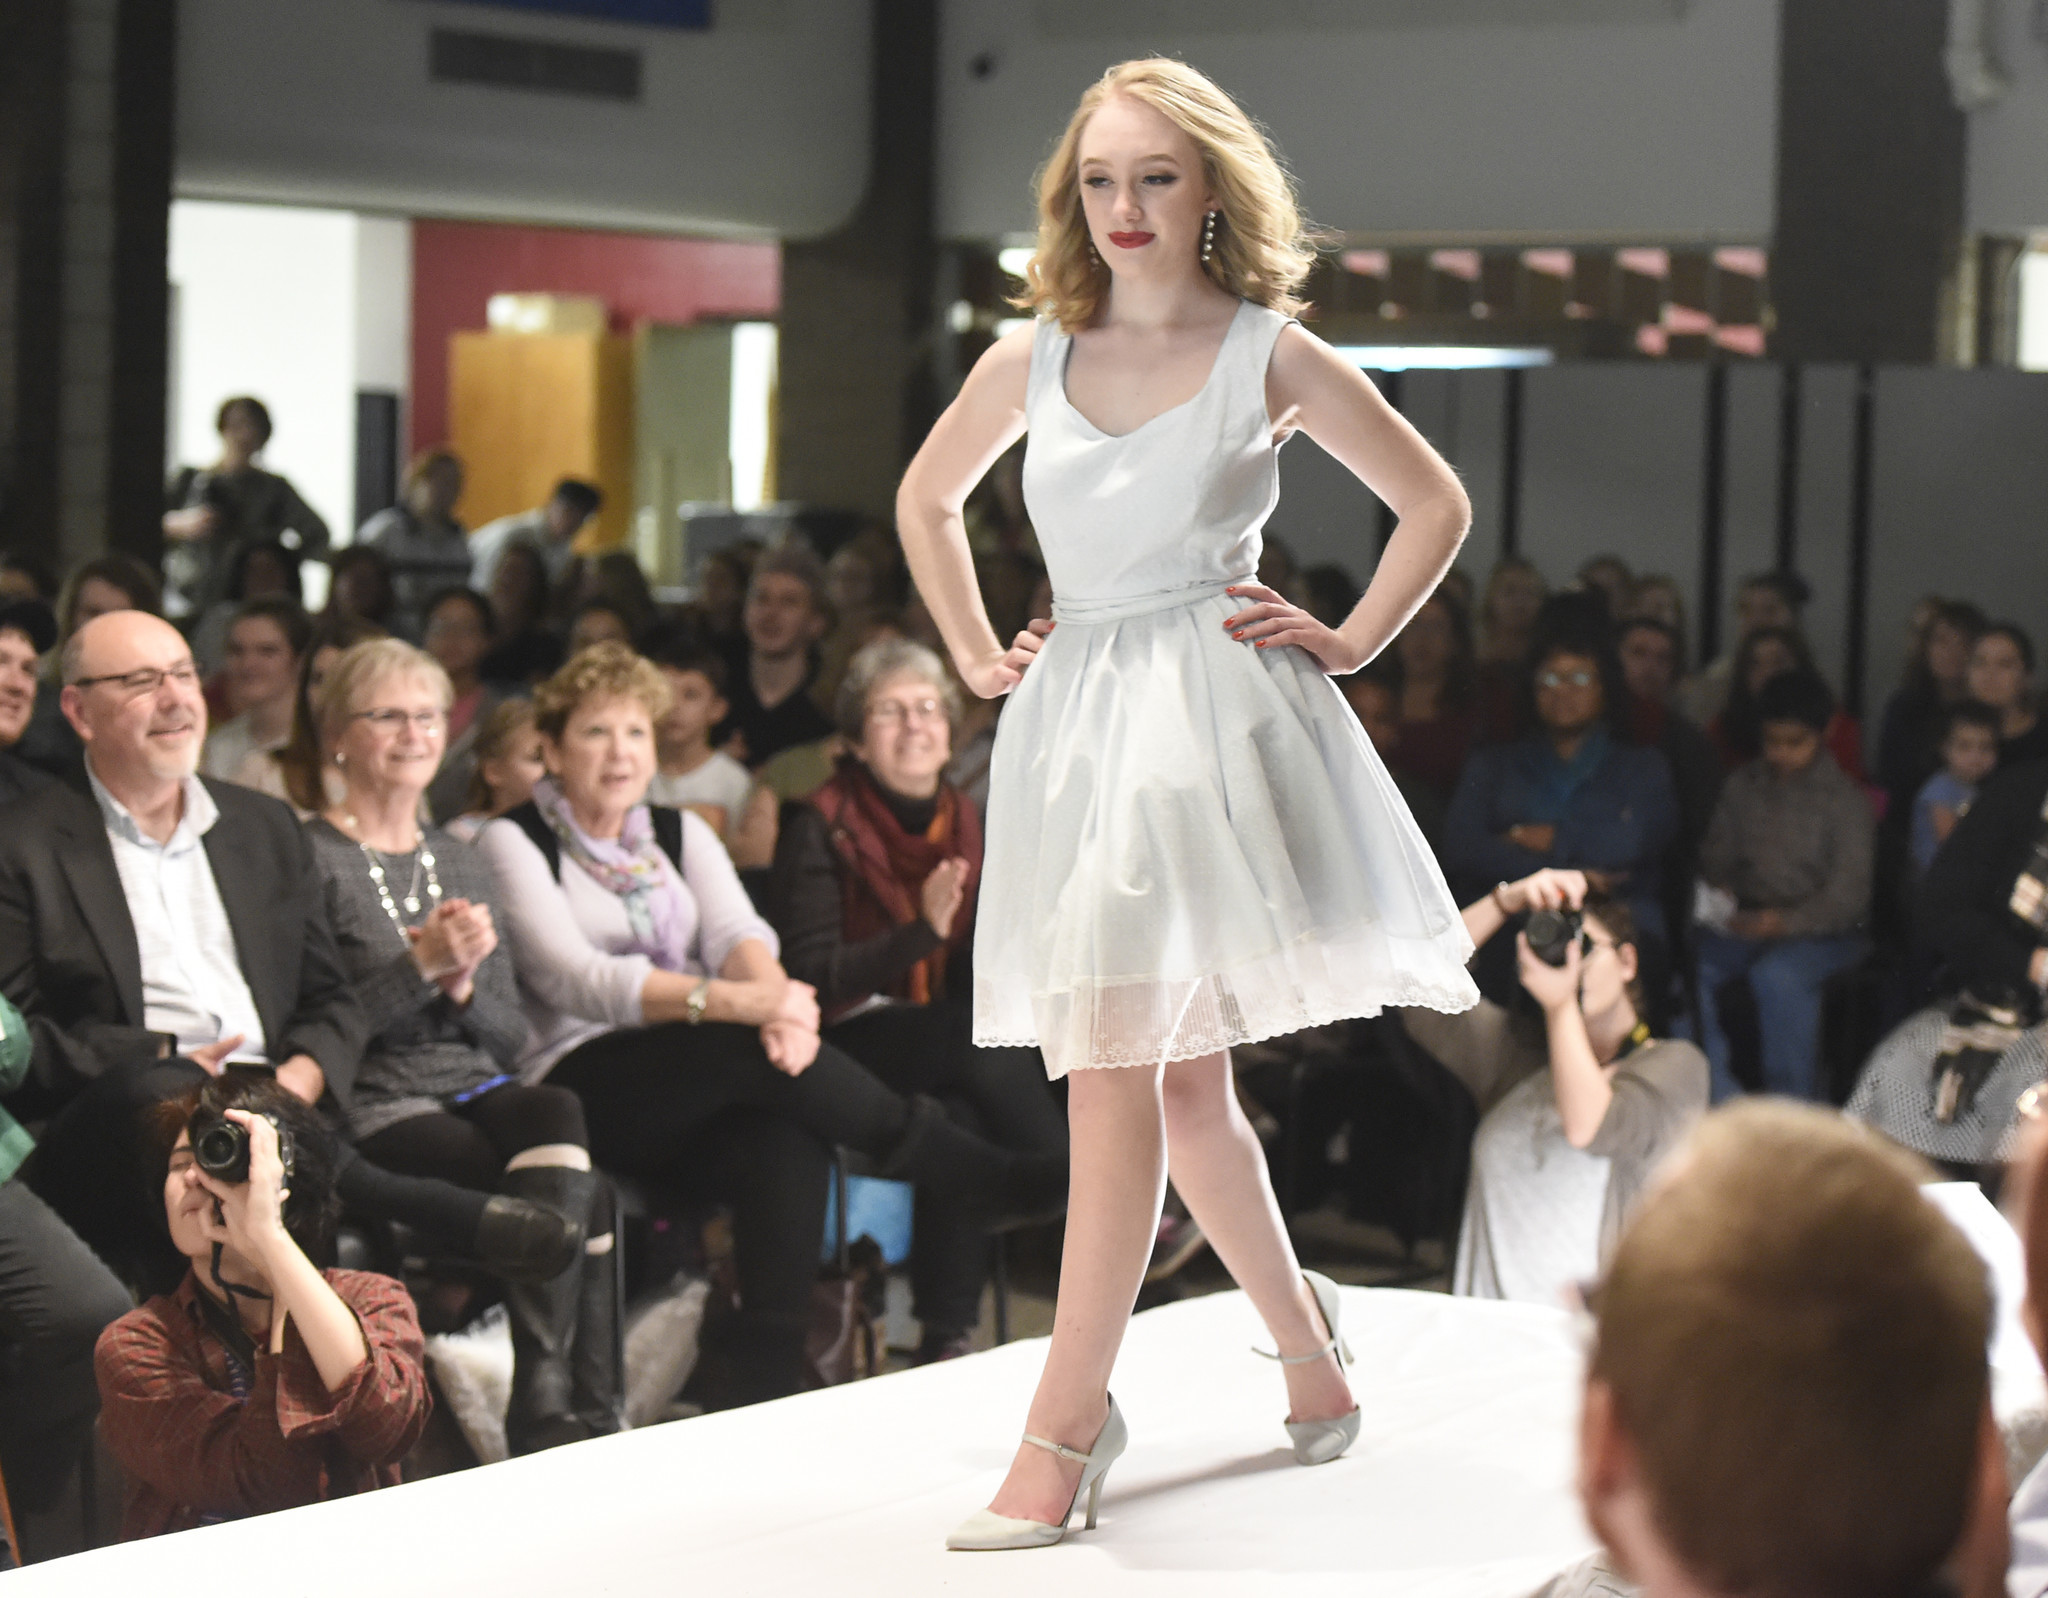 The Carroll County Career And Technology Center Textiles And Fashion Careers Class S Fashion Show Chicago Tribune